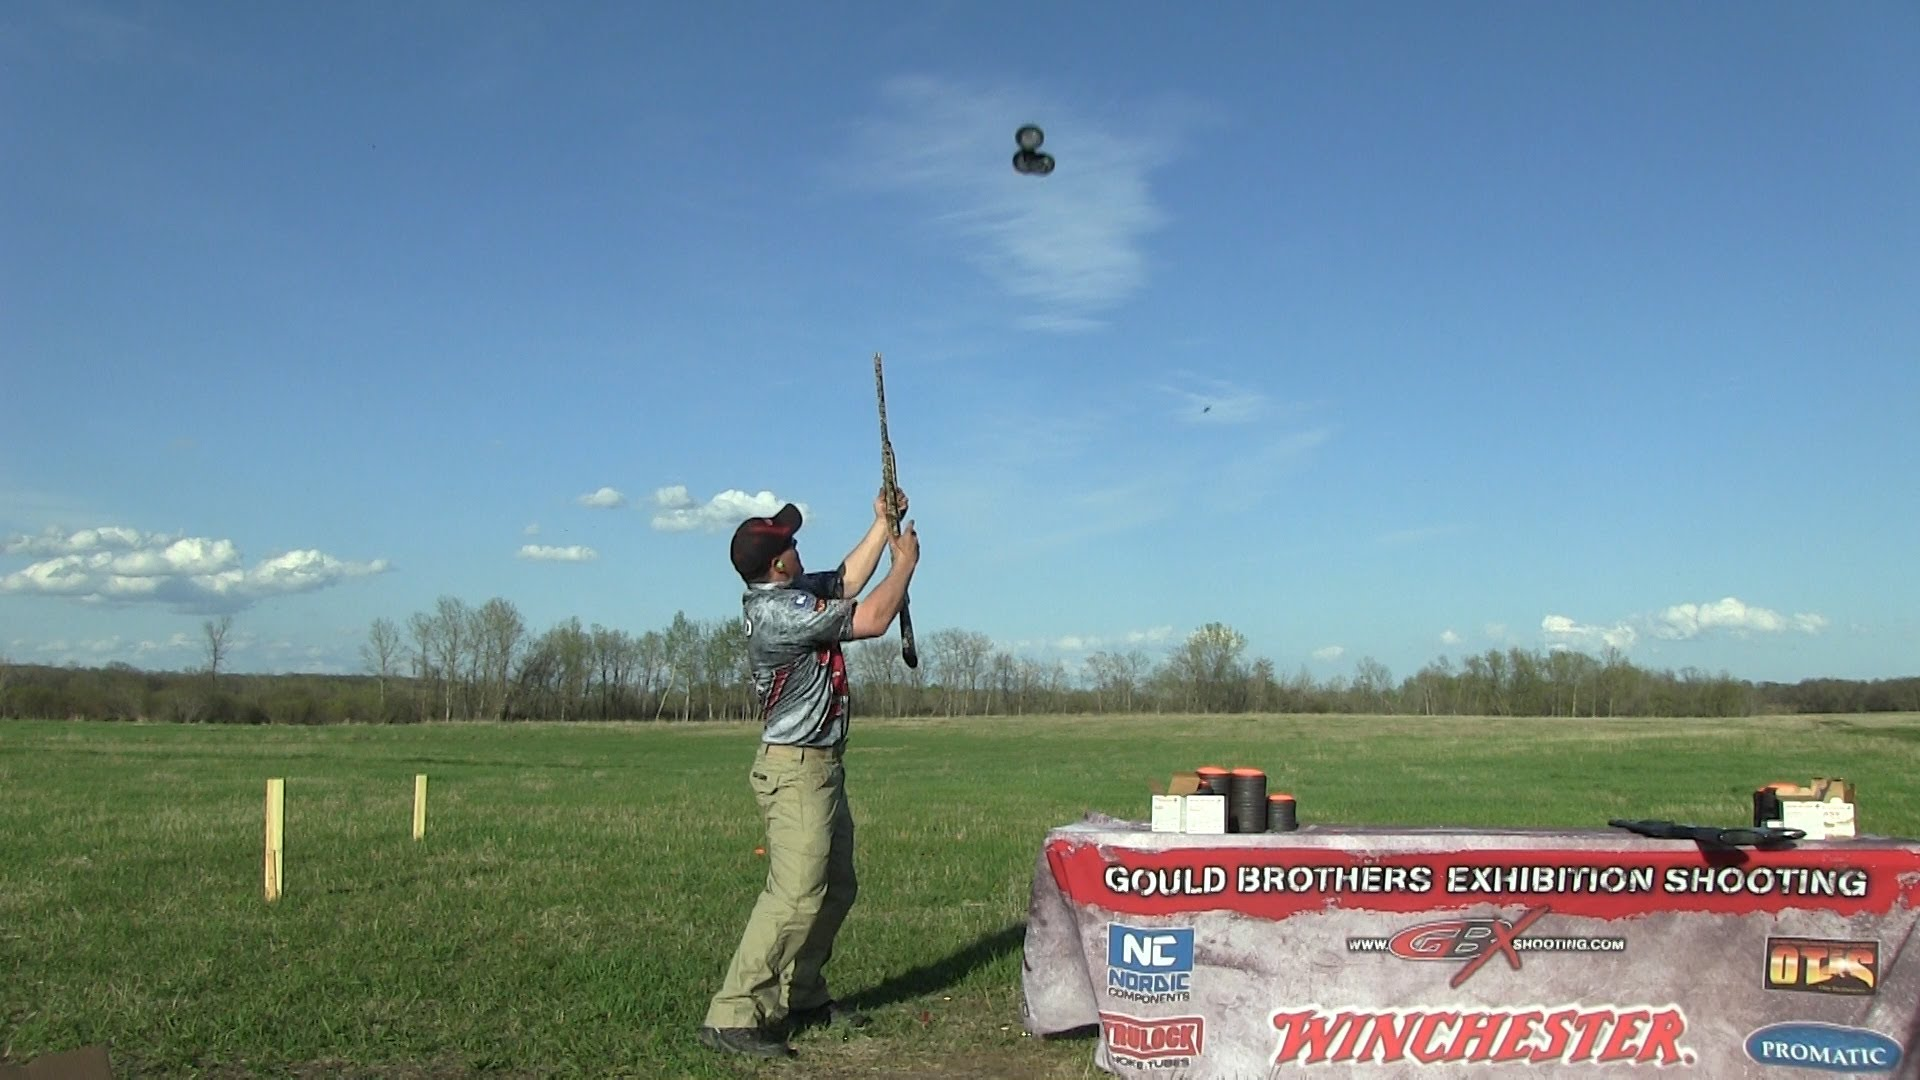 How to Shoot 3 Clays and an Ejected Shell Out of the Air - The Difficult Way